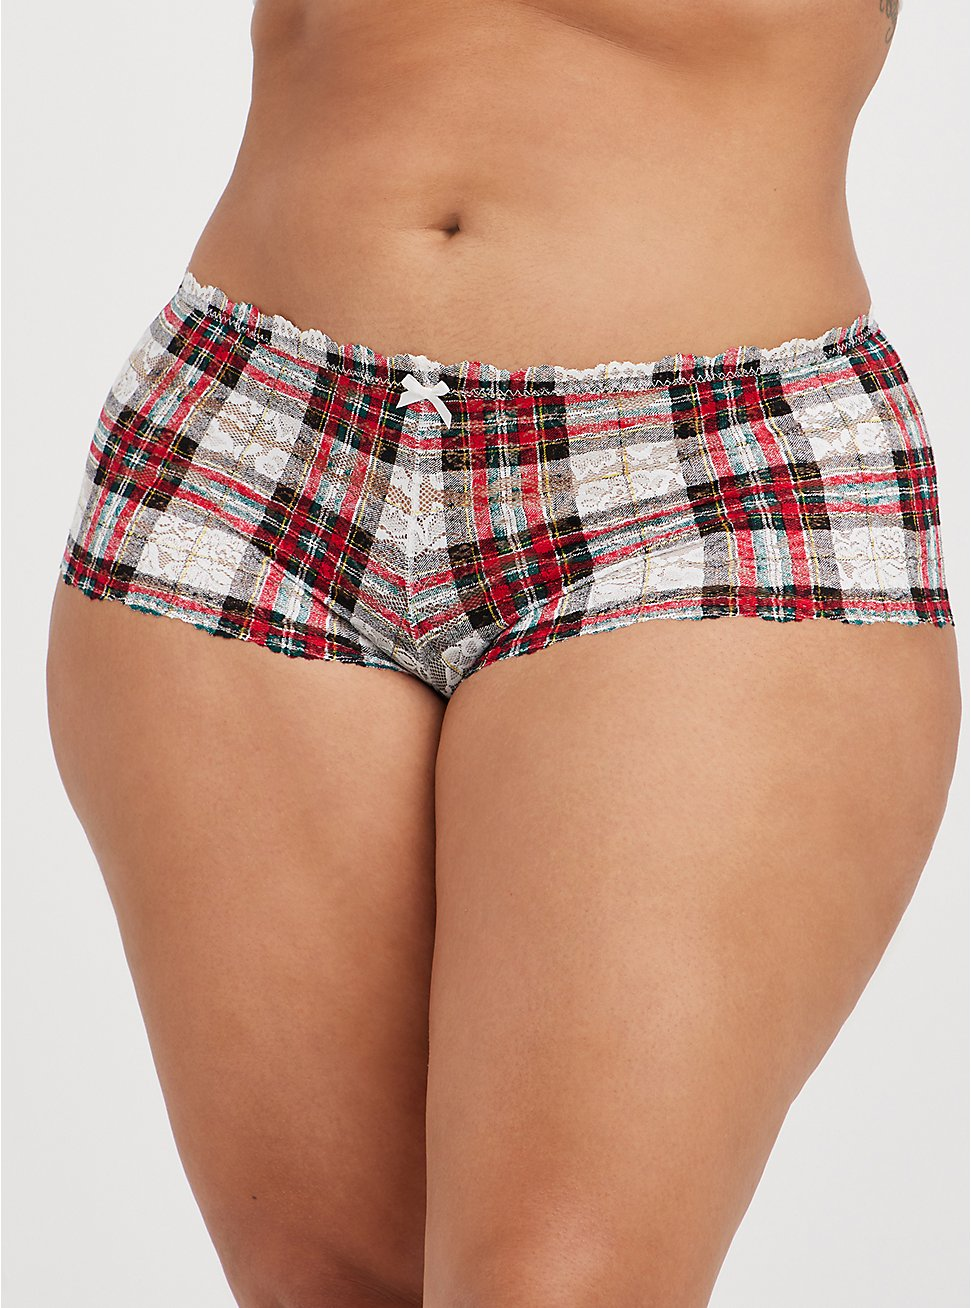 Lace Cheeky Panty - Plaid White and Red, NEXT TARTAIN PLAID- WHITE, hi-res